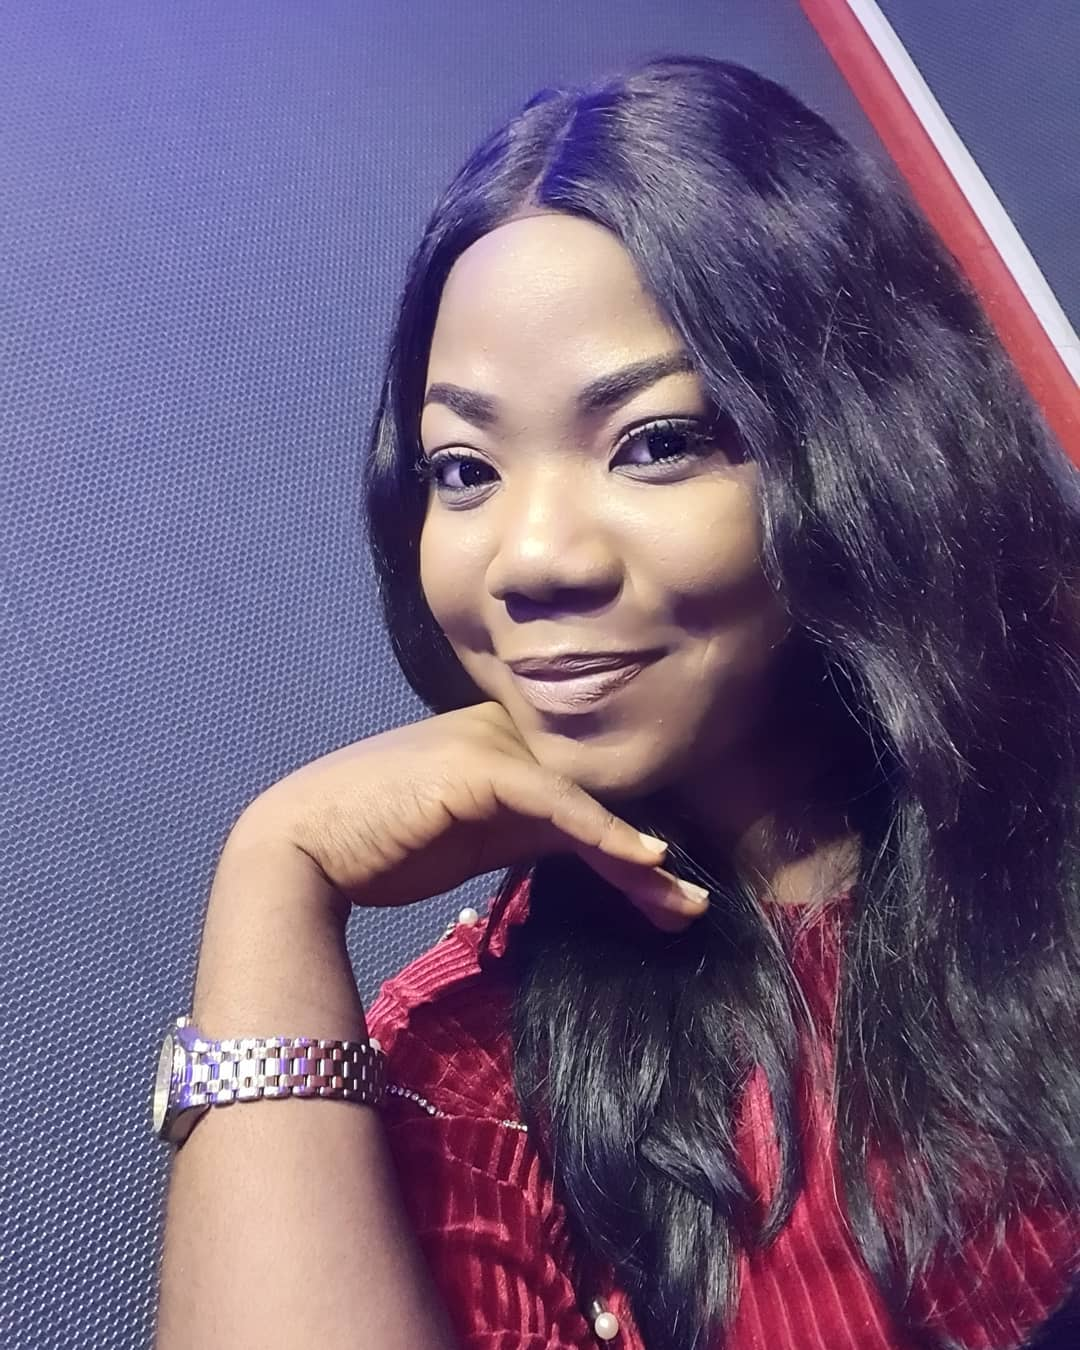 Mercy Chinwo set to release new album during live concert 19th April 2020